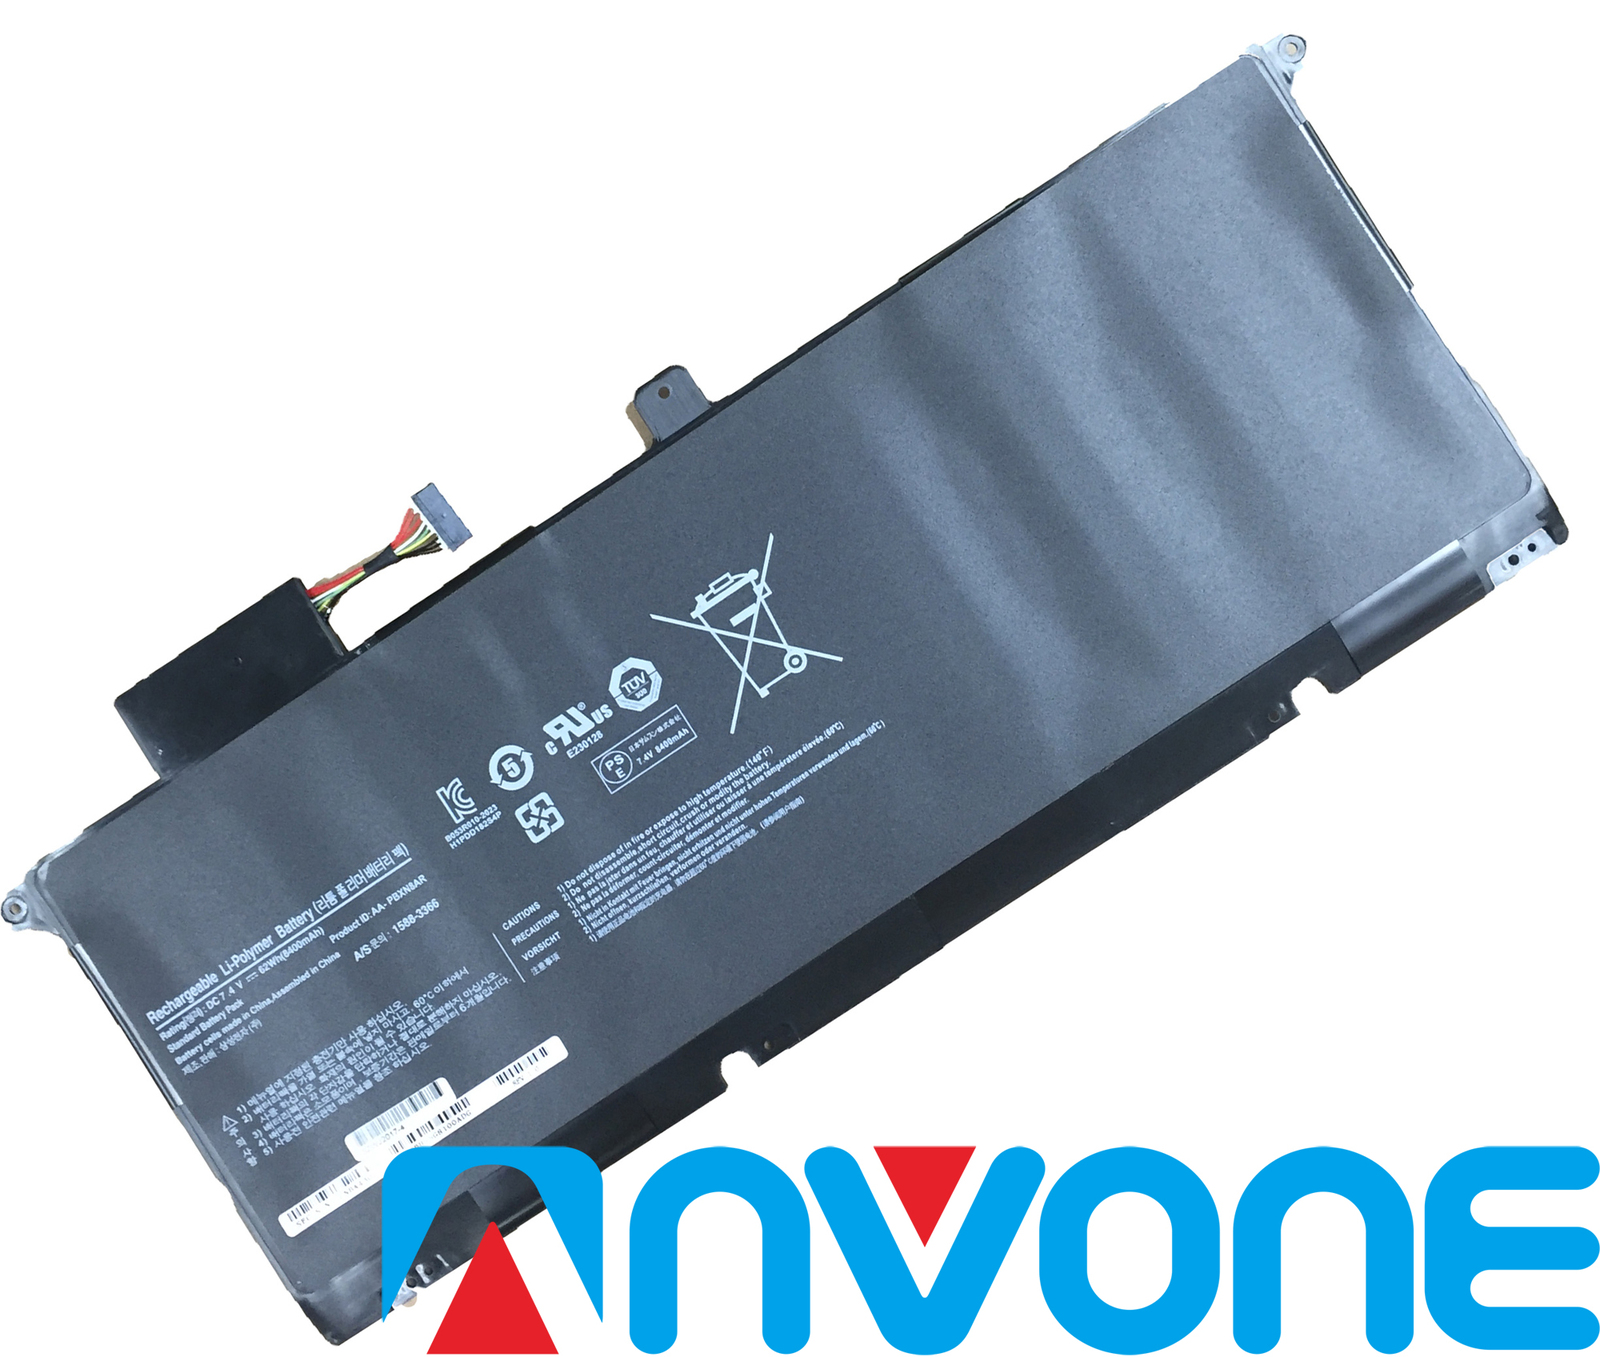 Primary image for 62Wh 7.4V AA-PBXN8AR Battery For Samsung 900X4B-A03 900X4D-A02 Series 9 NEW